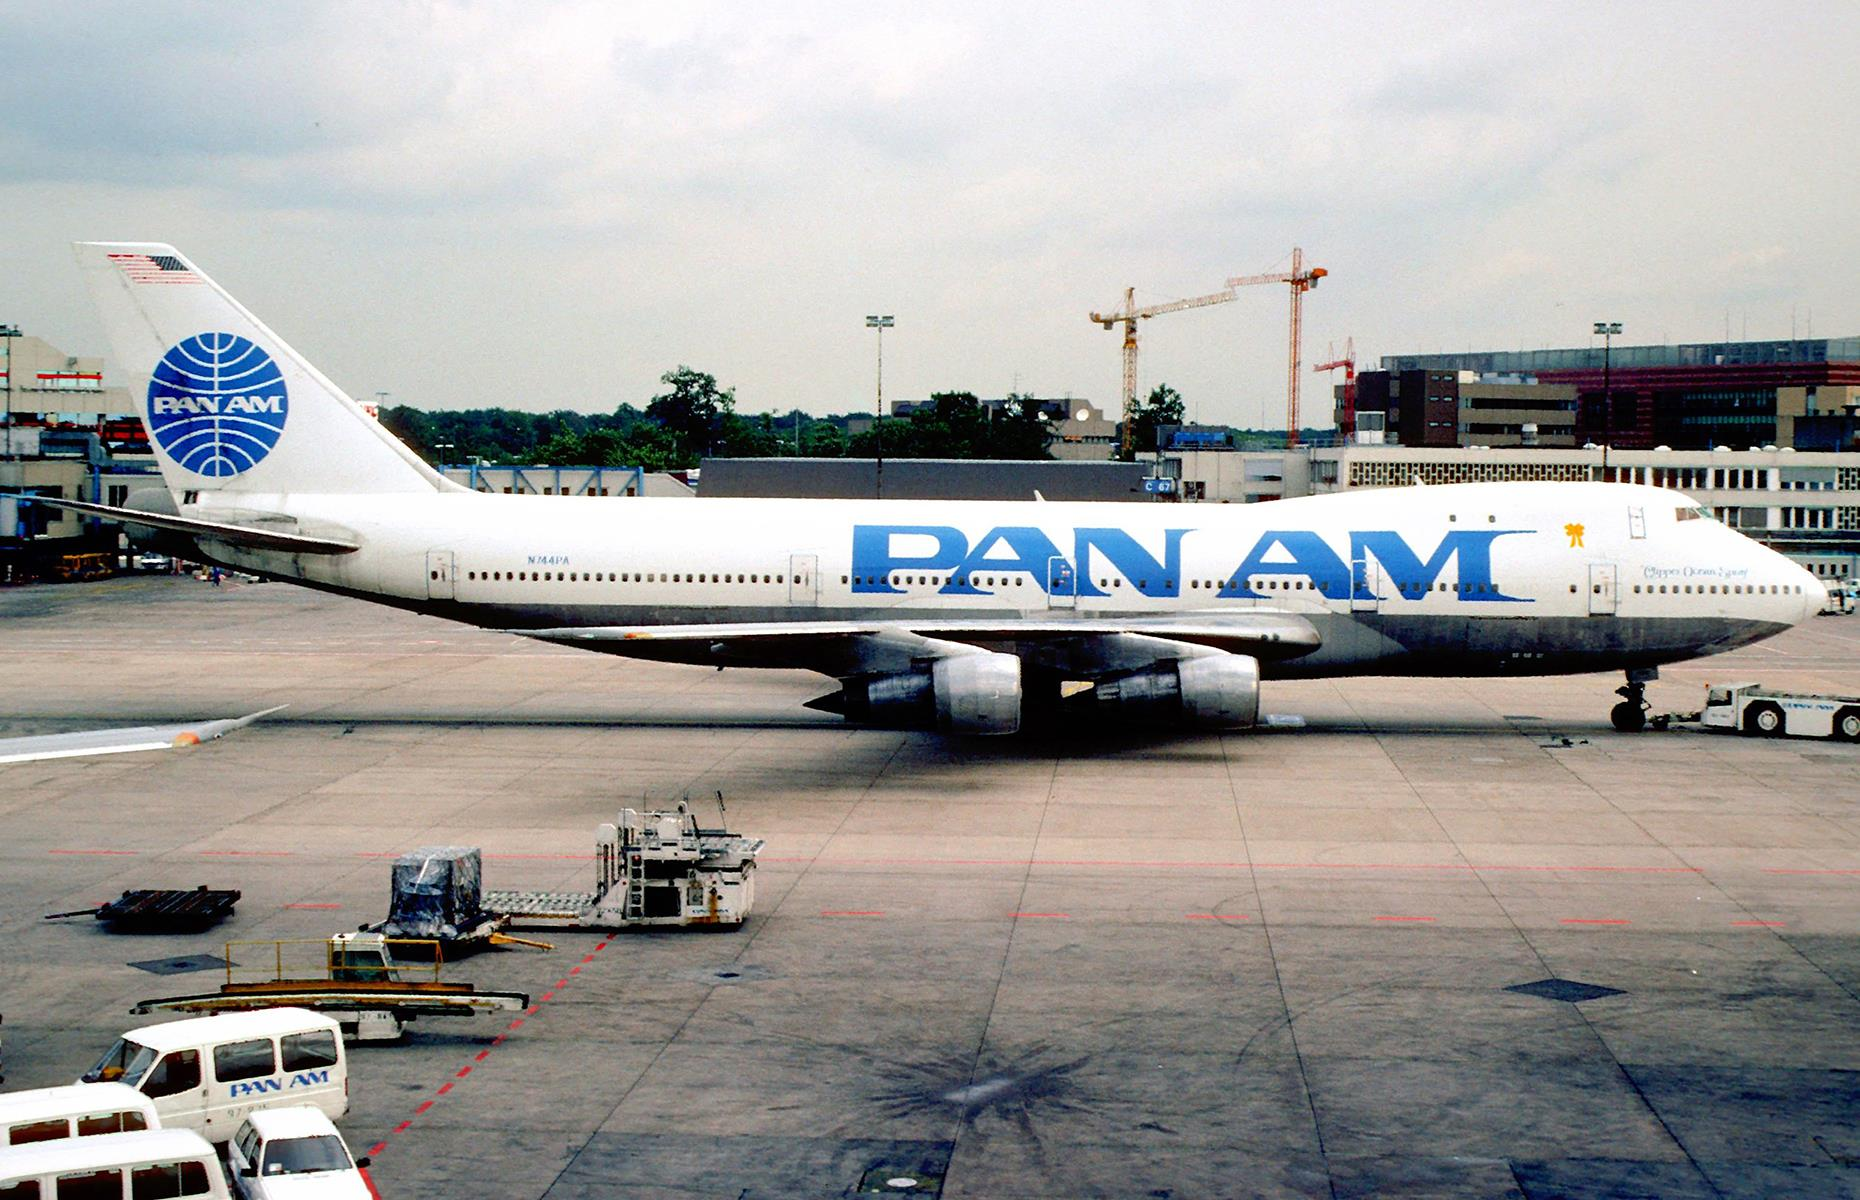 Slide 44 of 54: This increased competition didn't help long-standing carriers such as Pan American World Airways. The struggle to compete with budget rivals – as well as the 1973 oil crisis, a well-publicized hijacking and some devastating crashes – led to Pan Am's demise. The airline finally collapsed on 4 December 1991, a significant milestone in the history of commercial aviation.